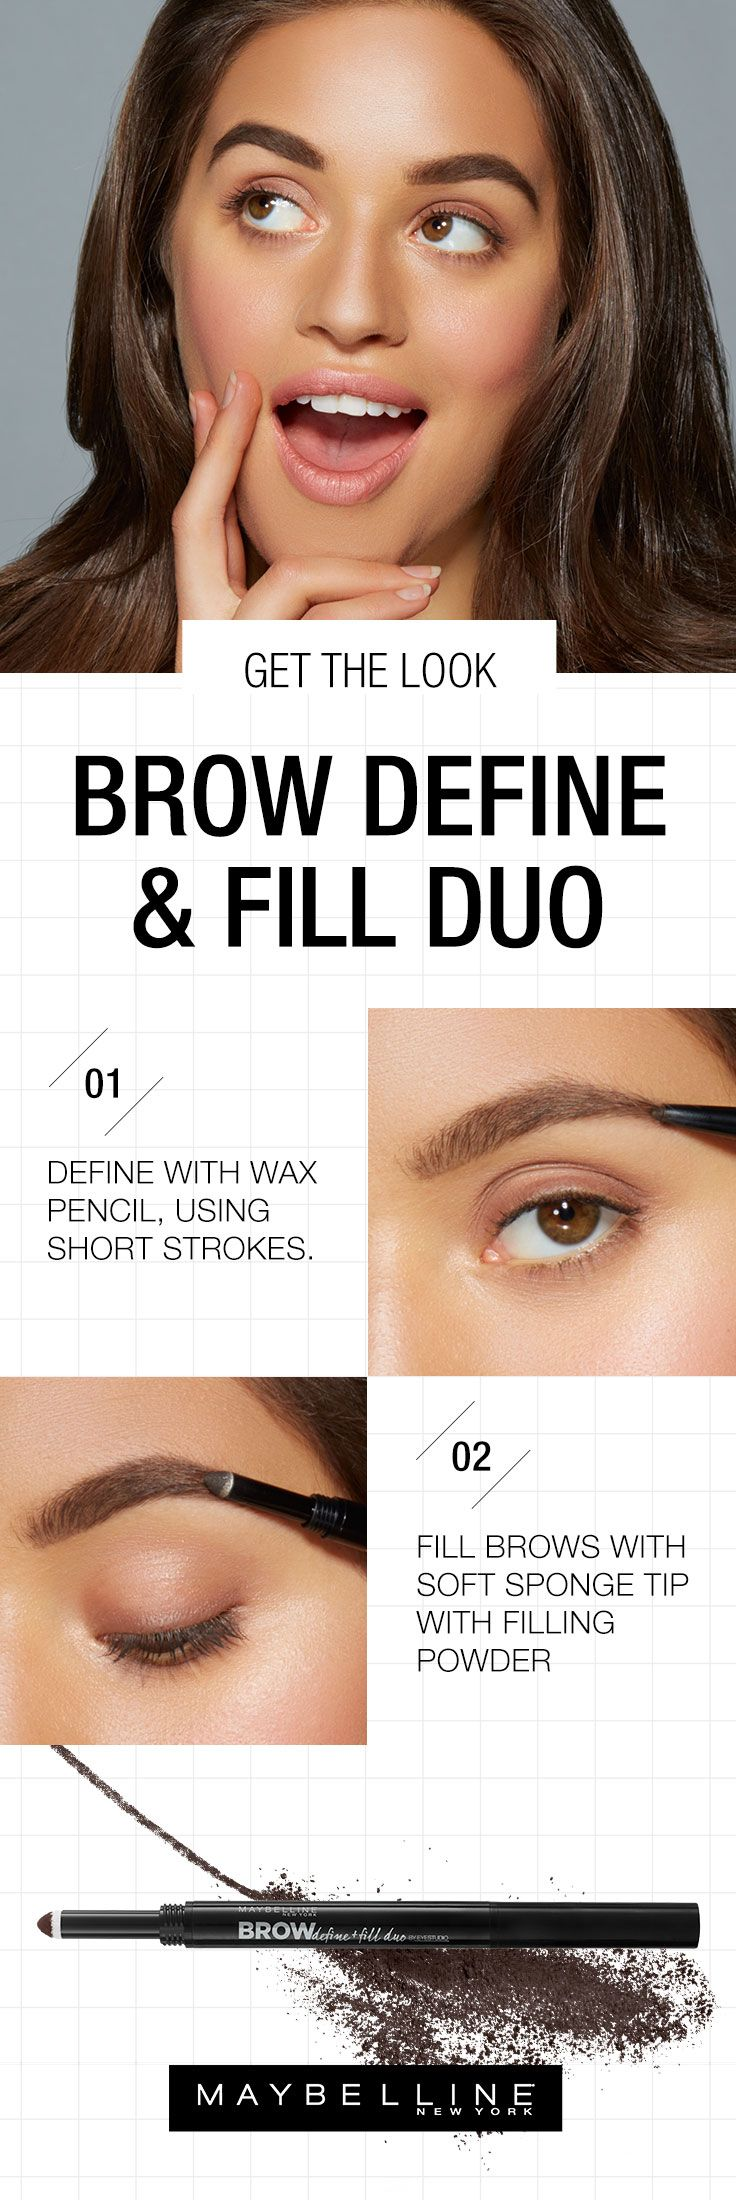 Bold brows are back. Add the Brow Define & Fill Duo from Maybelline to your makeup routine for naturally full, long-lasting arches. The wax pencil shapes your brows and the filling powder finishes those arches into things of beauty. Get ready to flaunt some serious brow by following this easy get the look beauty tutorial.